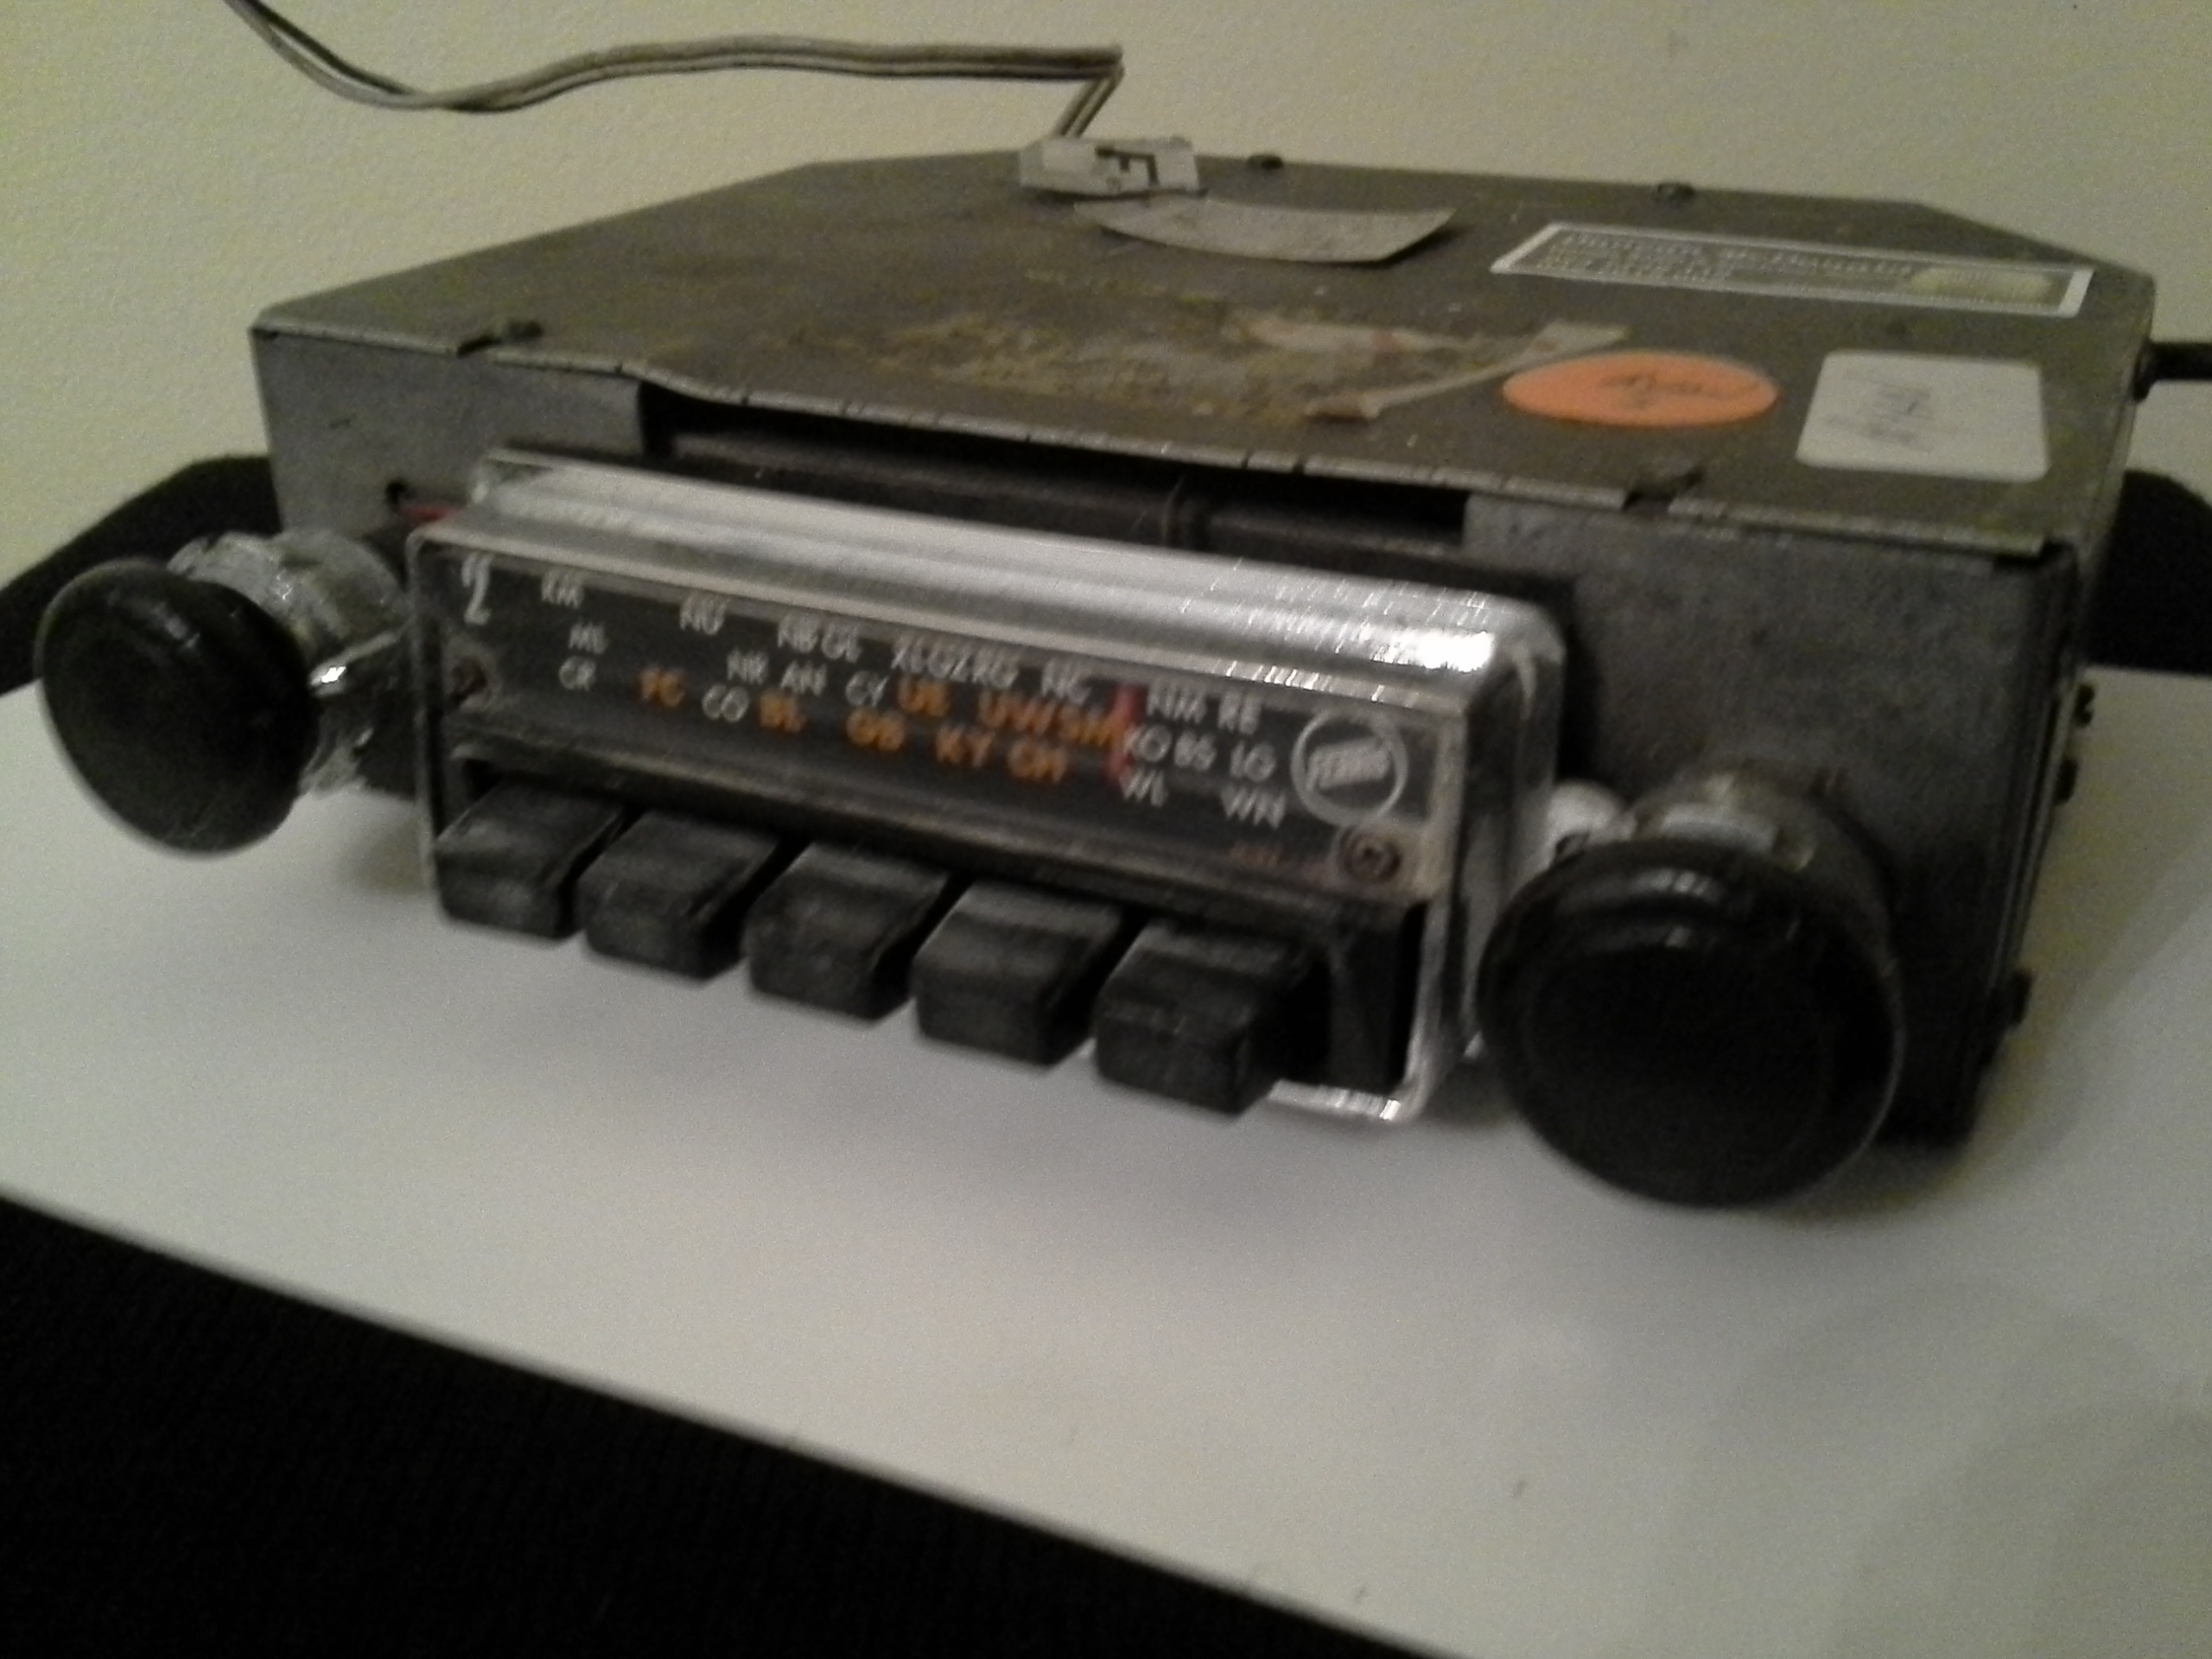 Aftermarket 1960s AM Radio, serviced and tested